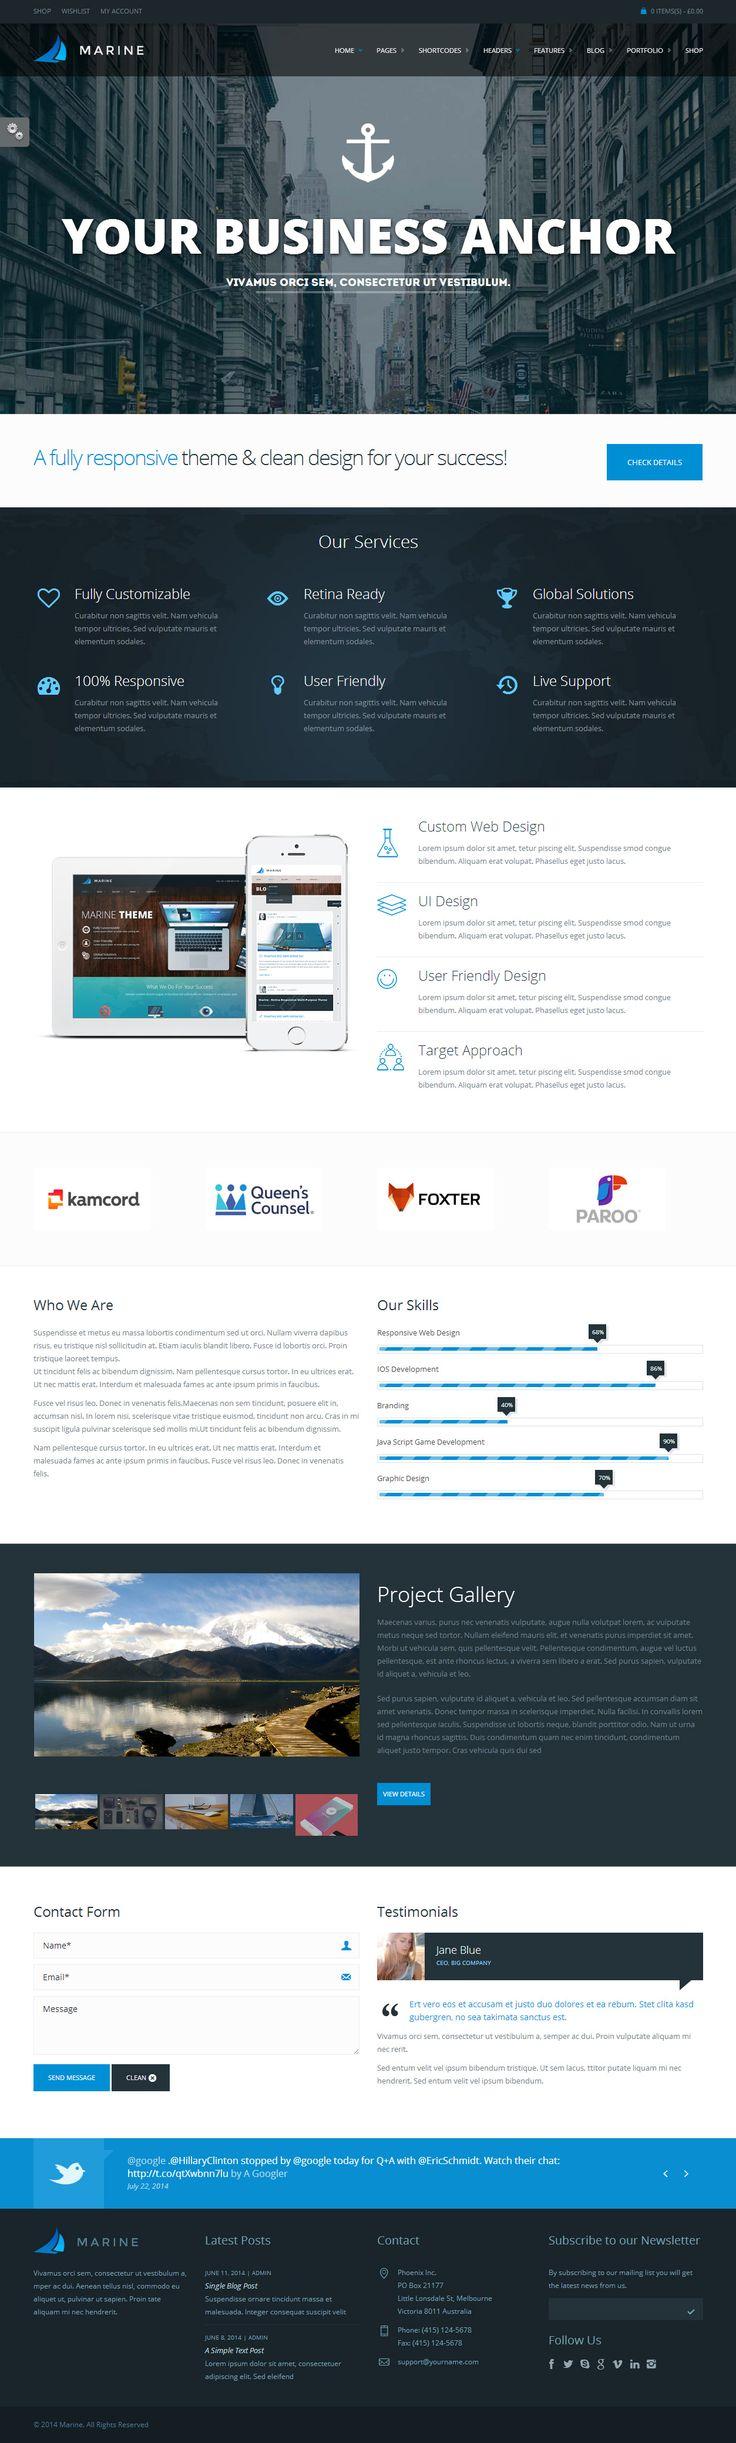 Marine is Premium full Responsive WordPress Multipurpose theme. WooCommerce. Parallax Scrolling. Retina Ready. Google Map. http://www.responsivemiracle.com/cms/marine-premium-responsive-multipurpose-worpress-theme/